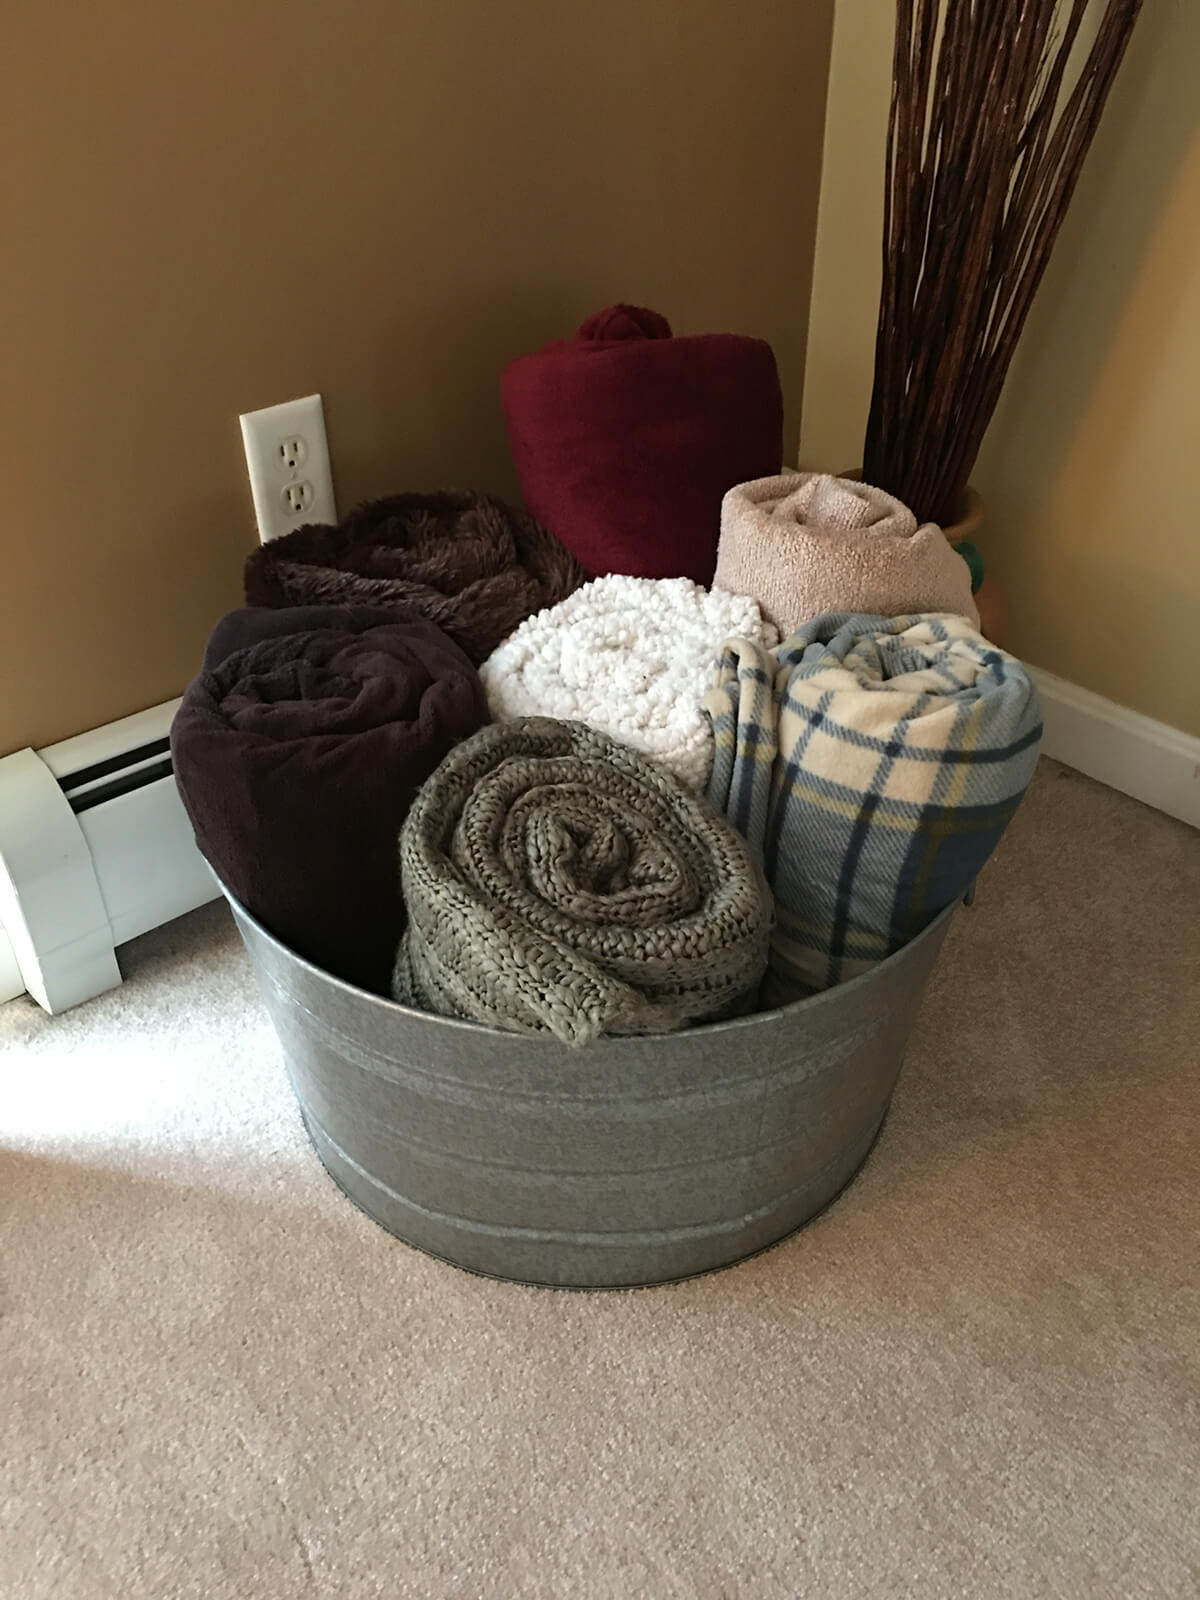 Keep Towels Organized in Water-Proof Bucket